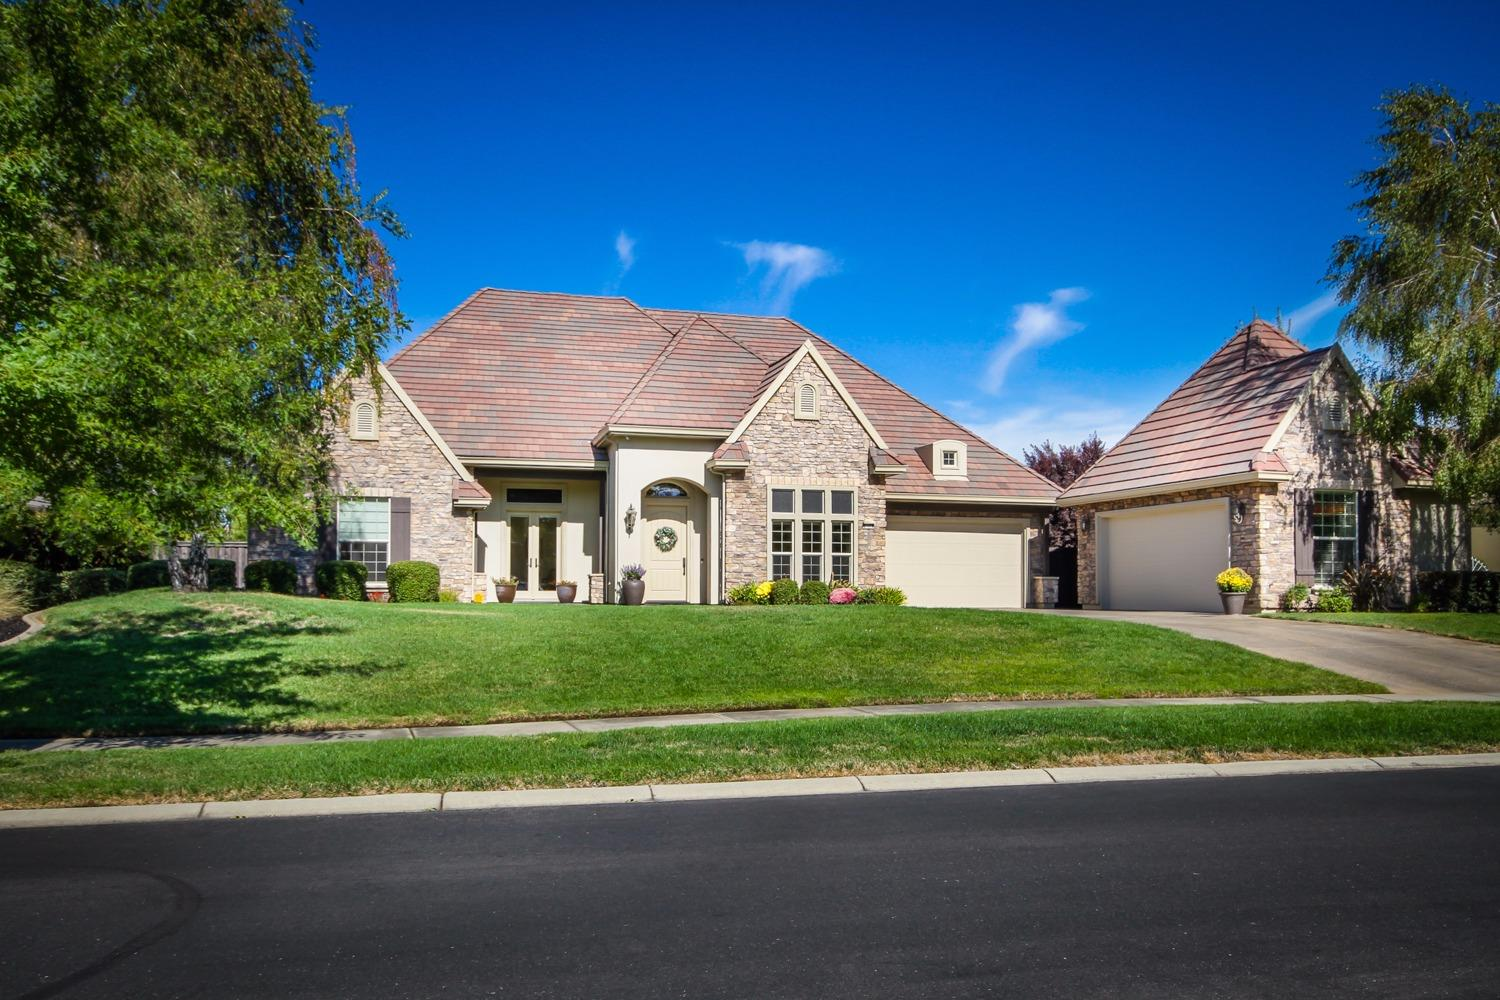 Morgan Creek Single Story Custom! This home exudes pride of ownership! Pristine inside & out! This home sits on a nearly 2/3 acre fully landscaped lot on the 5th fairway. Home is 3589 sq. ft. with 4 beds & office or 5 beds, 3.5 baths,master suite with exercise/sitting room and 4 car garage! Travertine floors, granite, stainless appliances, central vac, freshly painted outside and more! Beautiful views of golf course & majestic oaks! Enjoy the walking trails along the creek! Come live the dream!